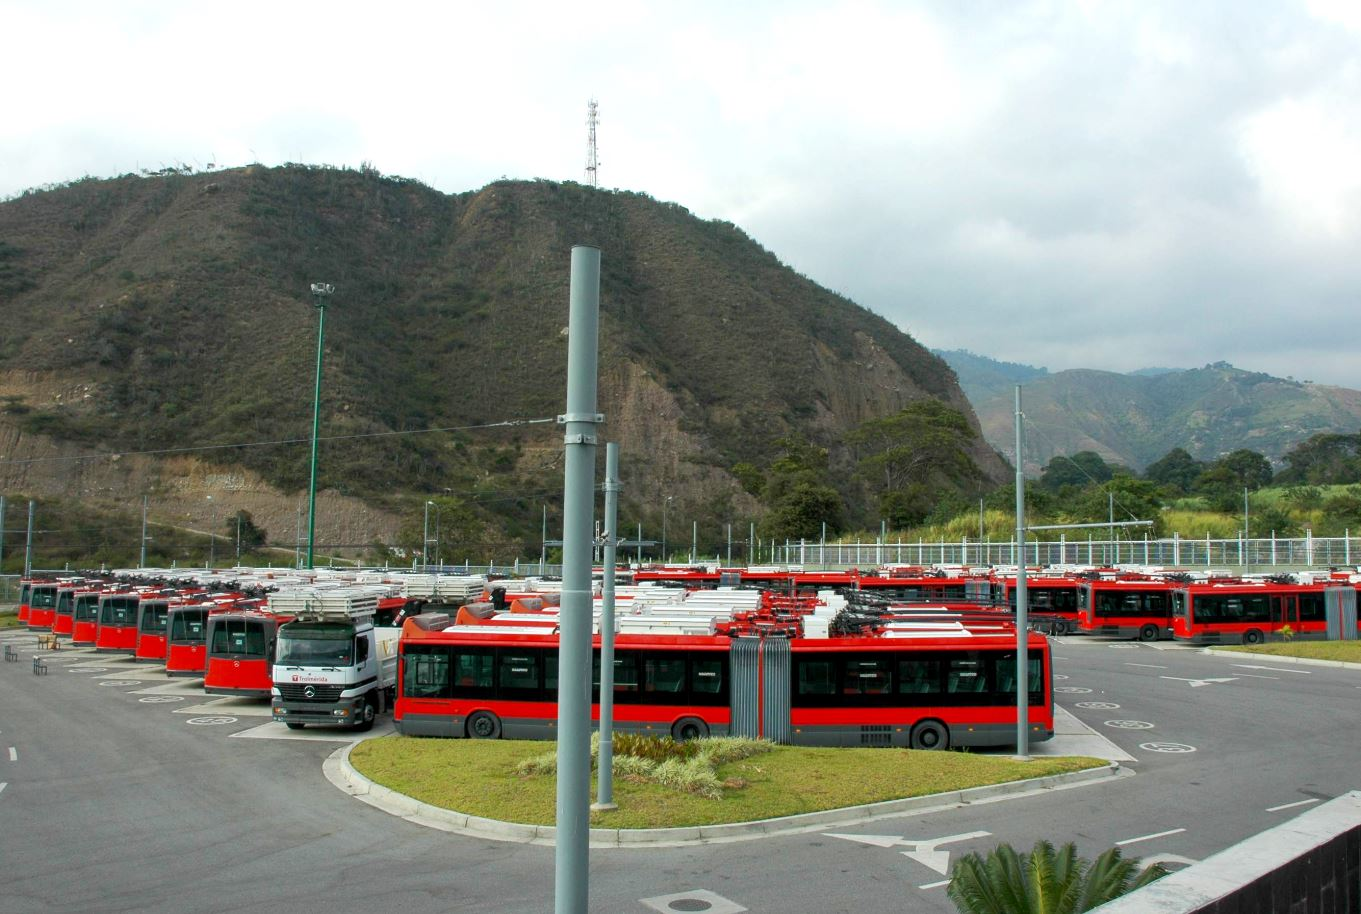 Mass transport system for the city of Mérida